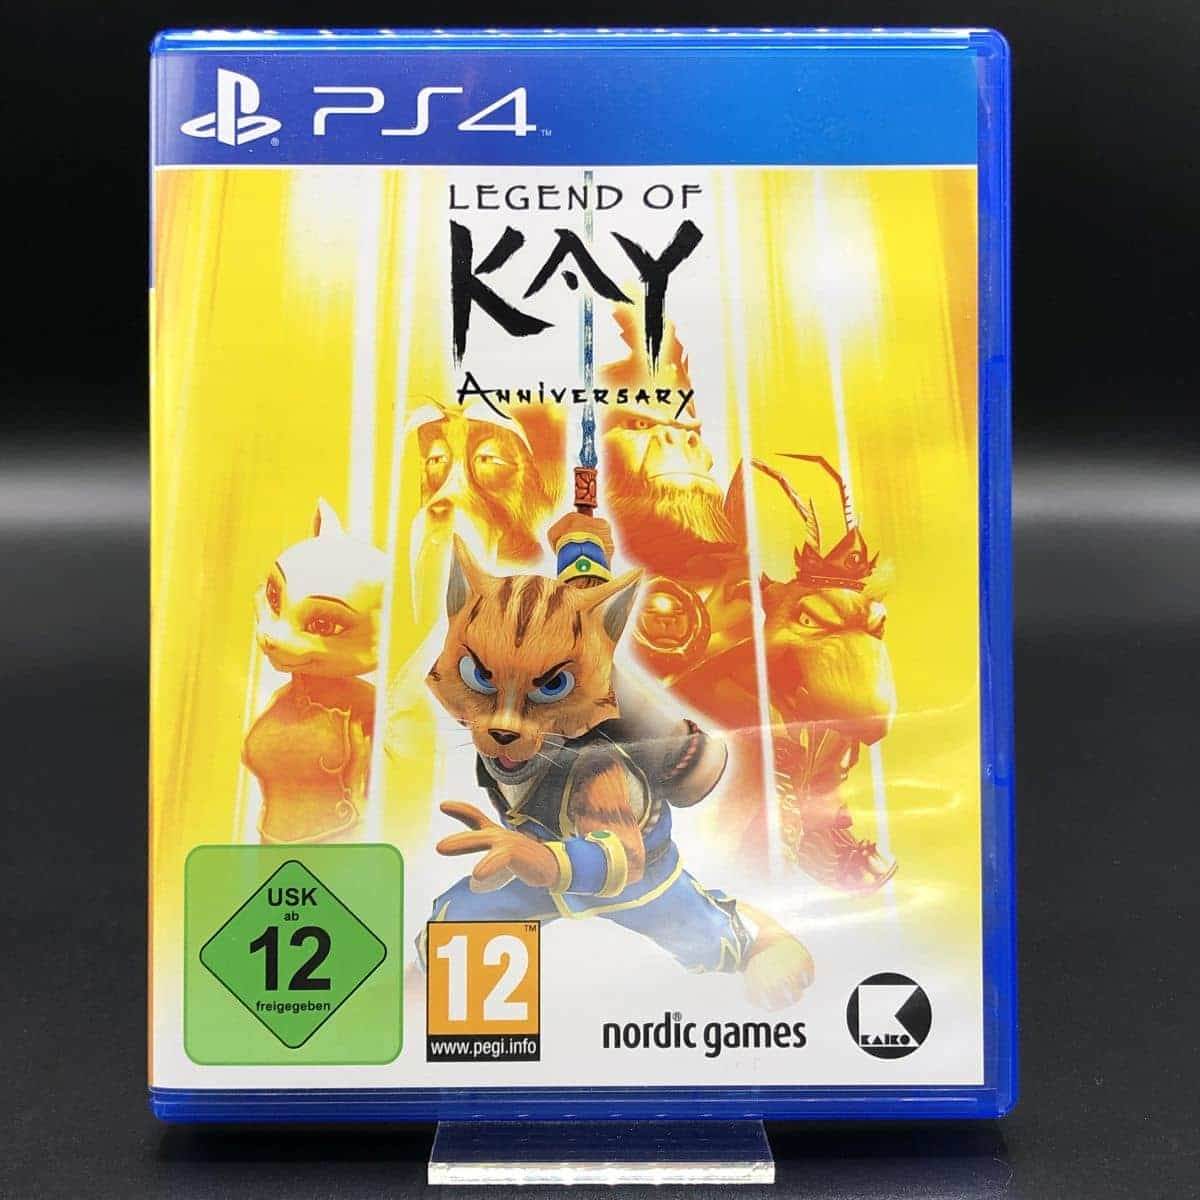 PS4 Legend of Kay Anniversary (Sehr gut) Sony PlayStation 4